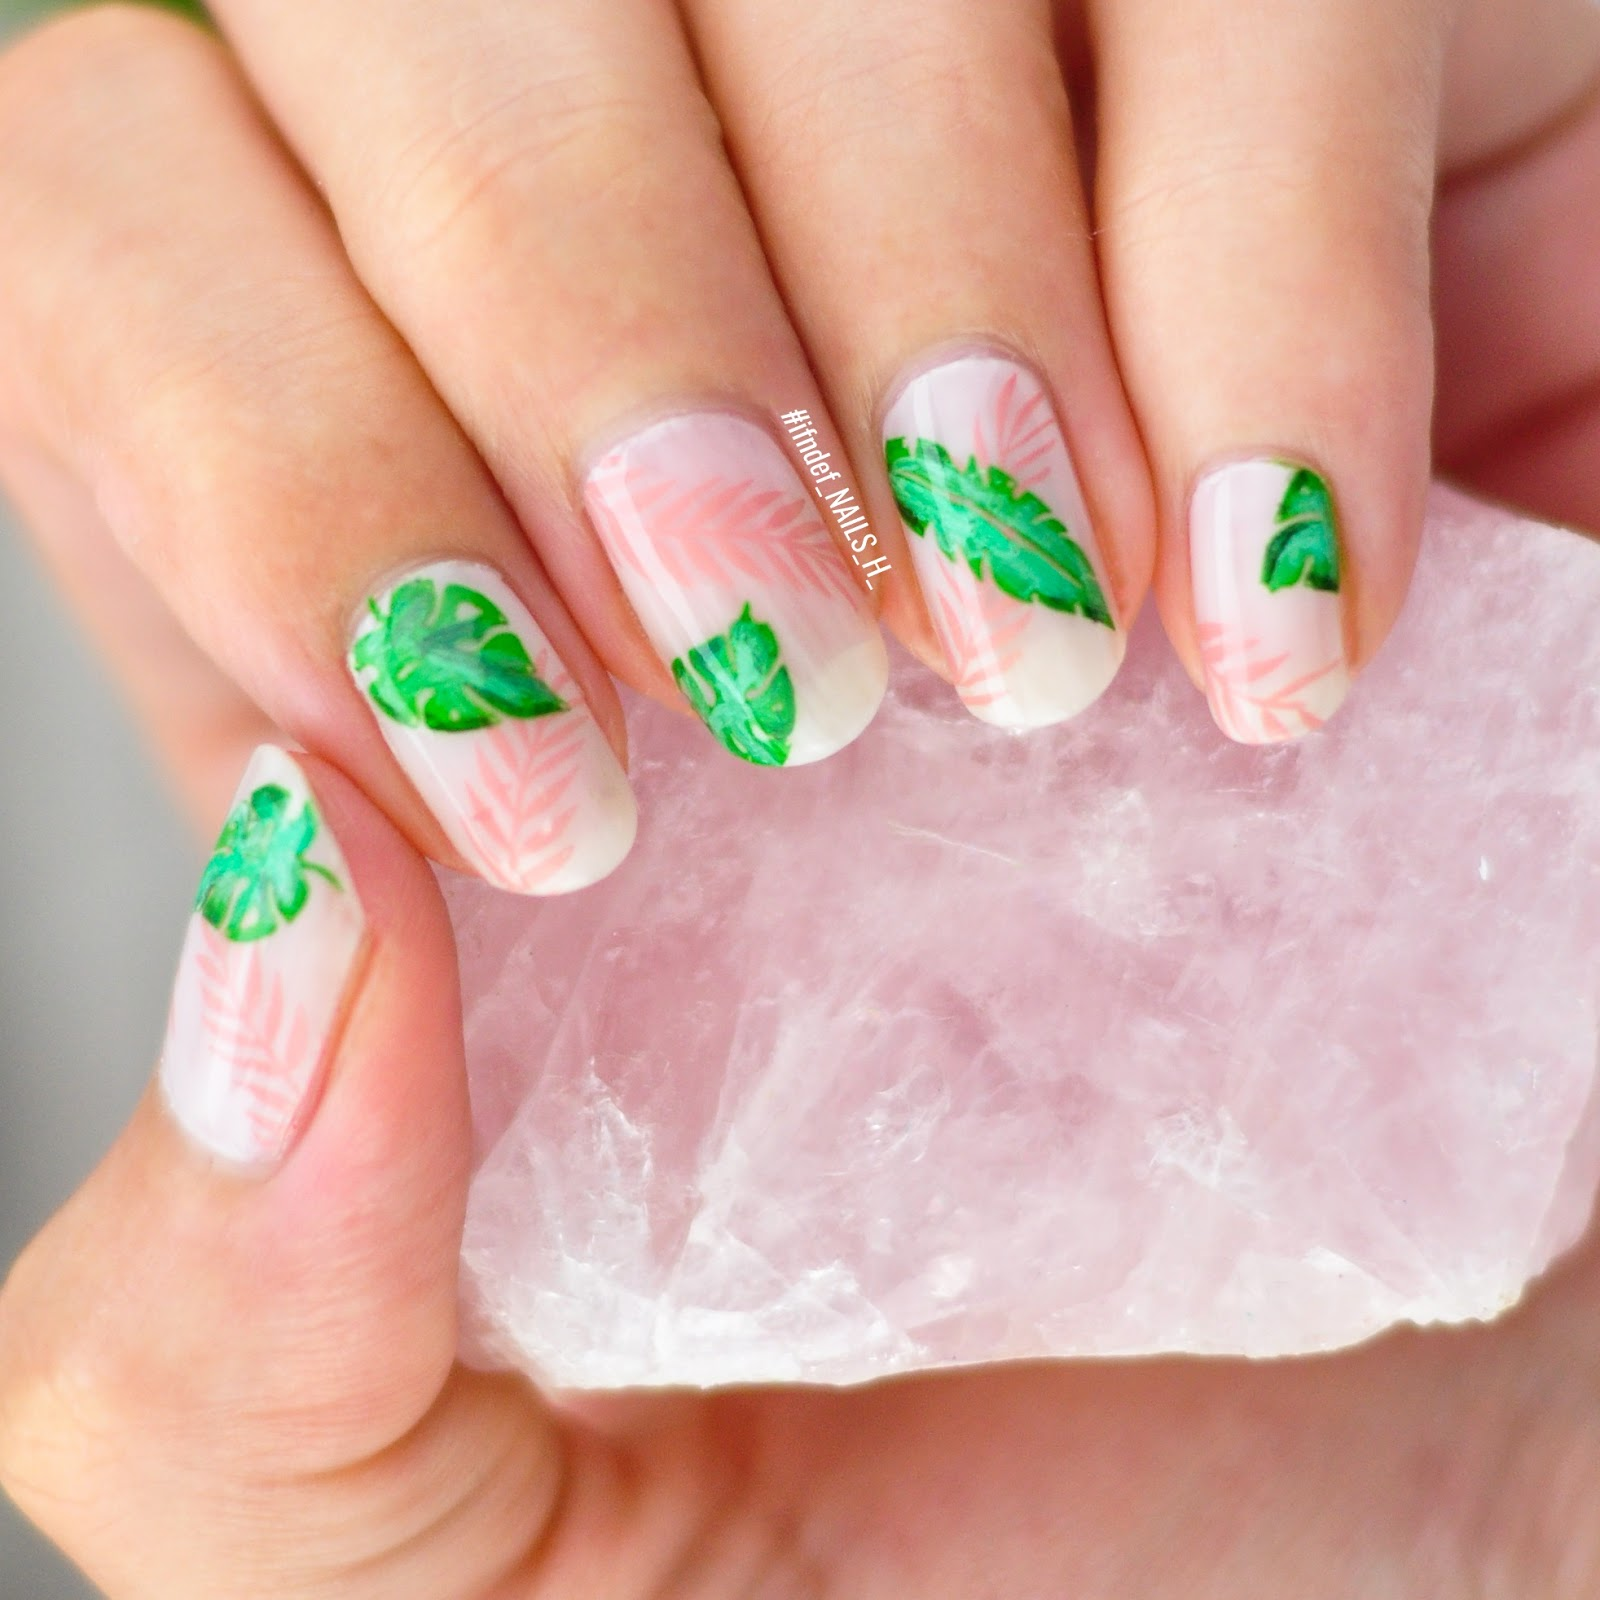 Nude Palm Leaves Pink Nude Tropical Design Ifndef Nails H Tropical leaves on pink background. nude palm leaves pink nude tropical